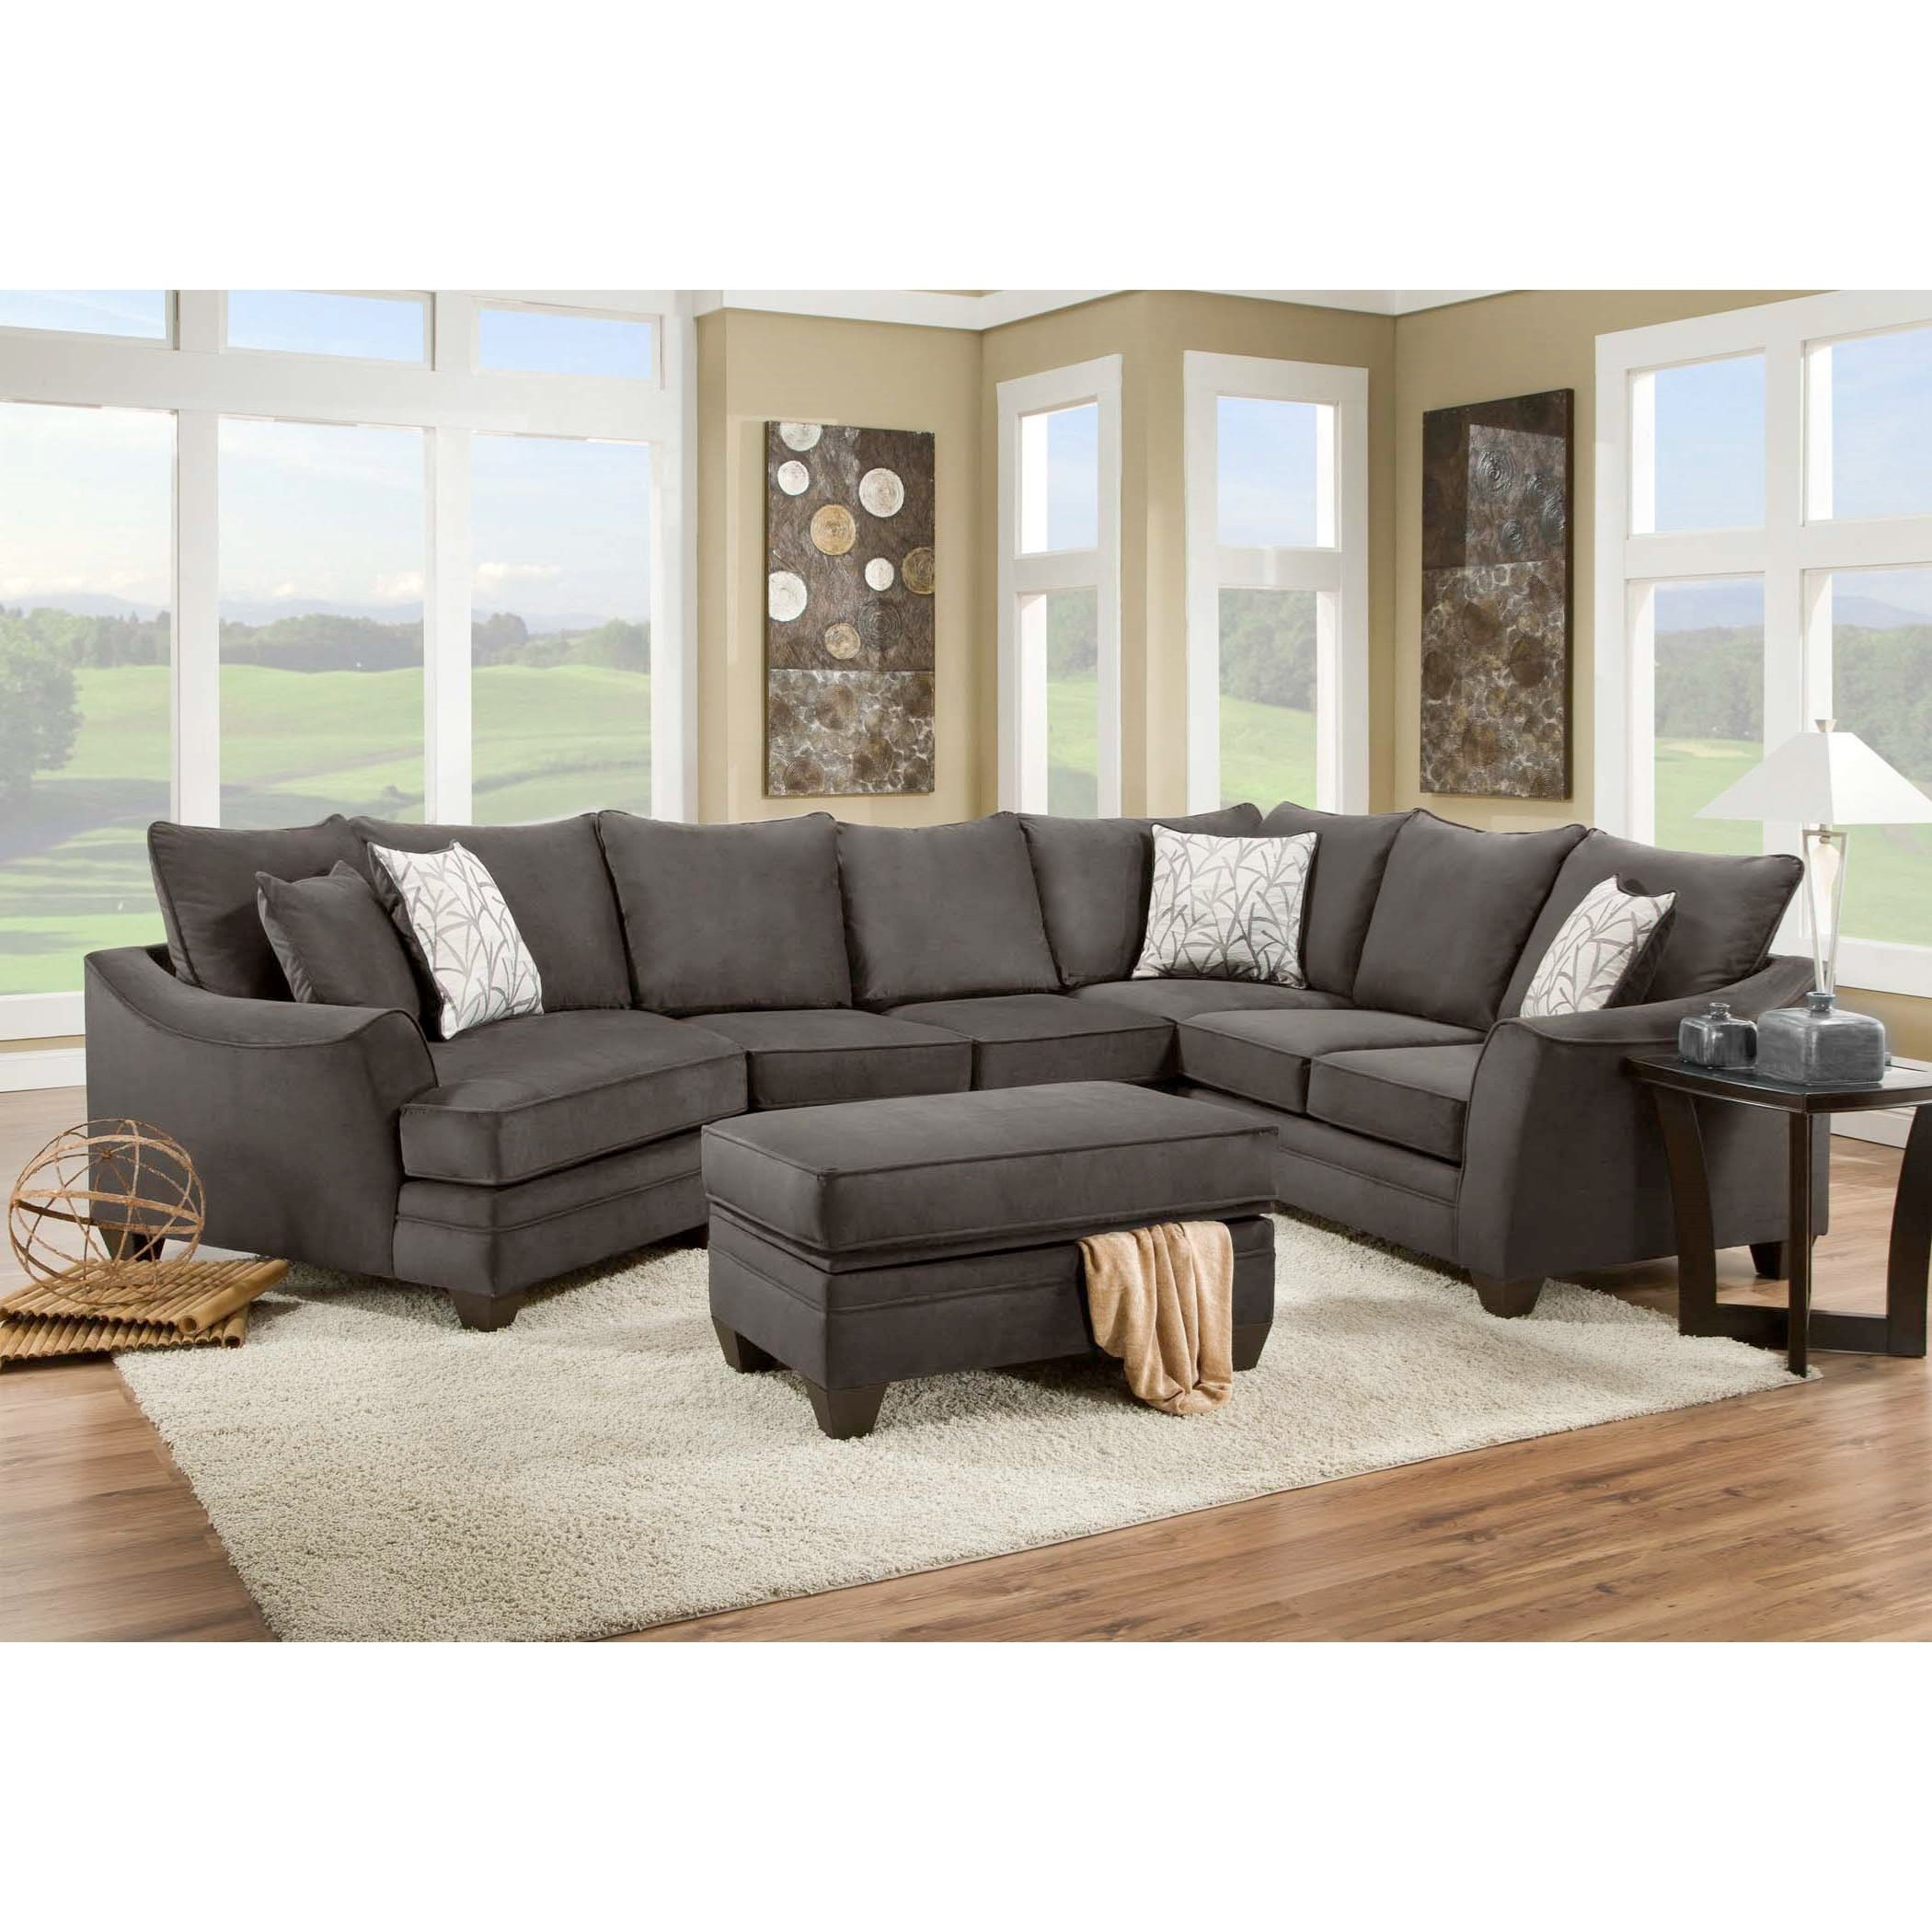 Beau American Furniture 3810 Sectional Sofa That Seats 5 With Left Side Cuddler